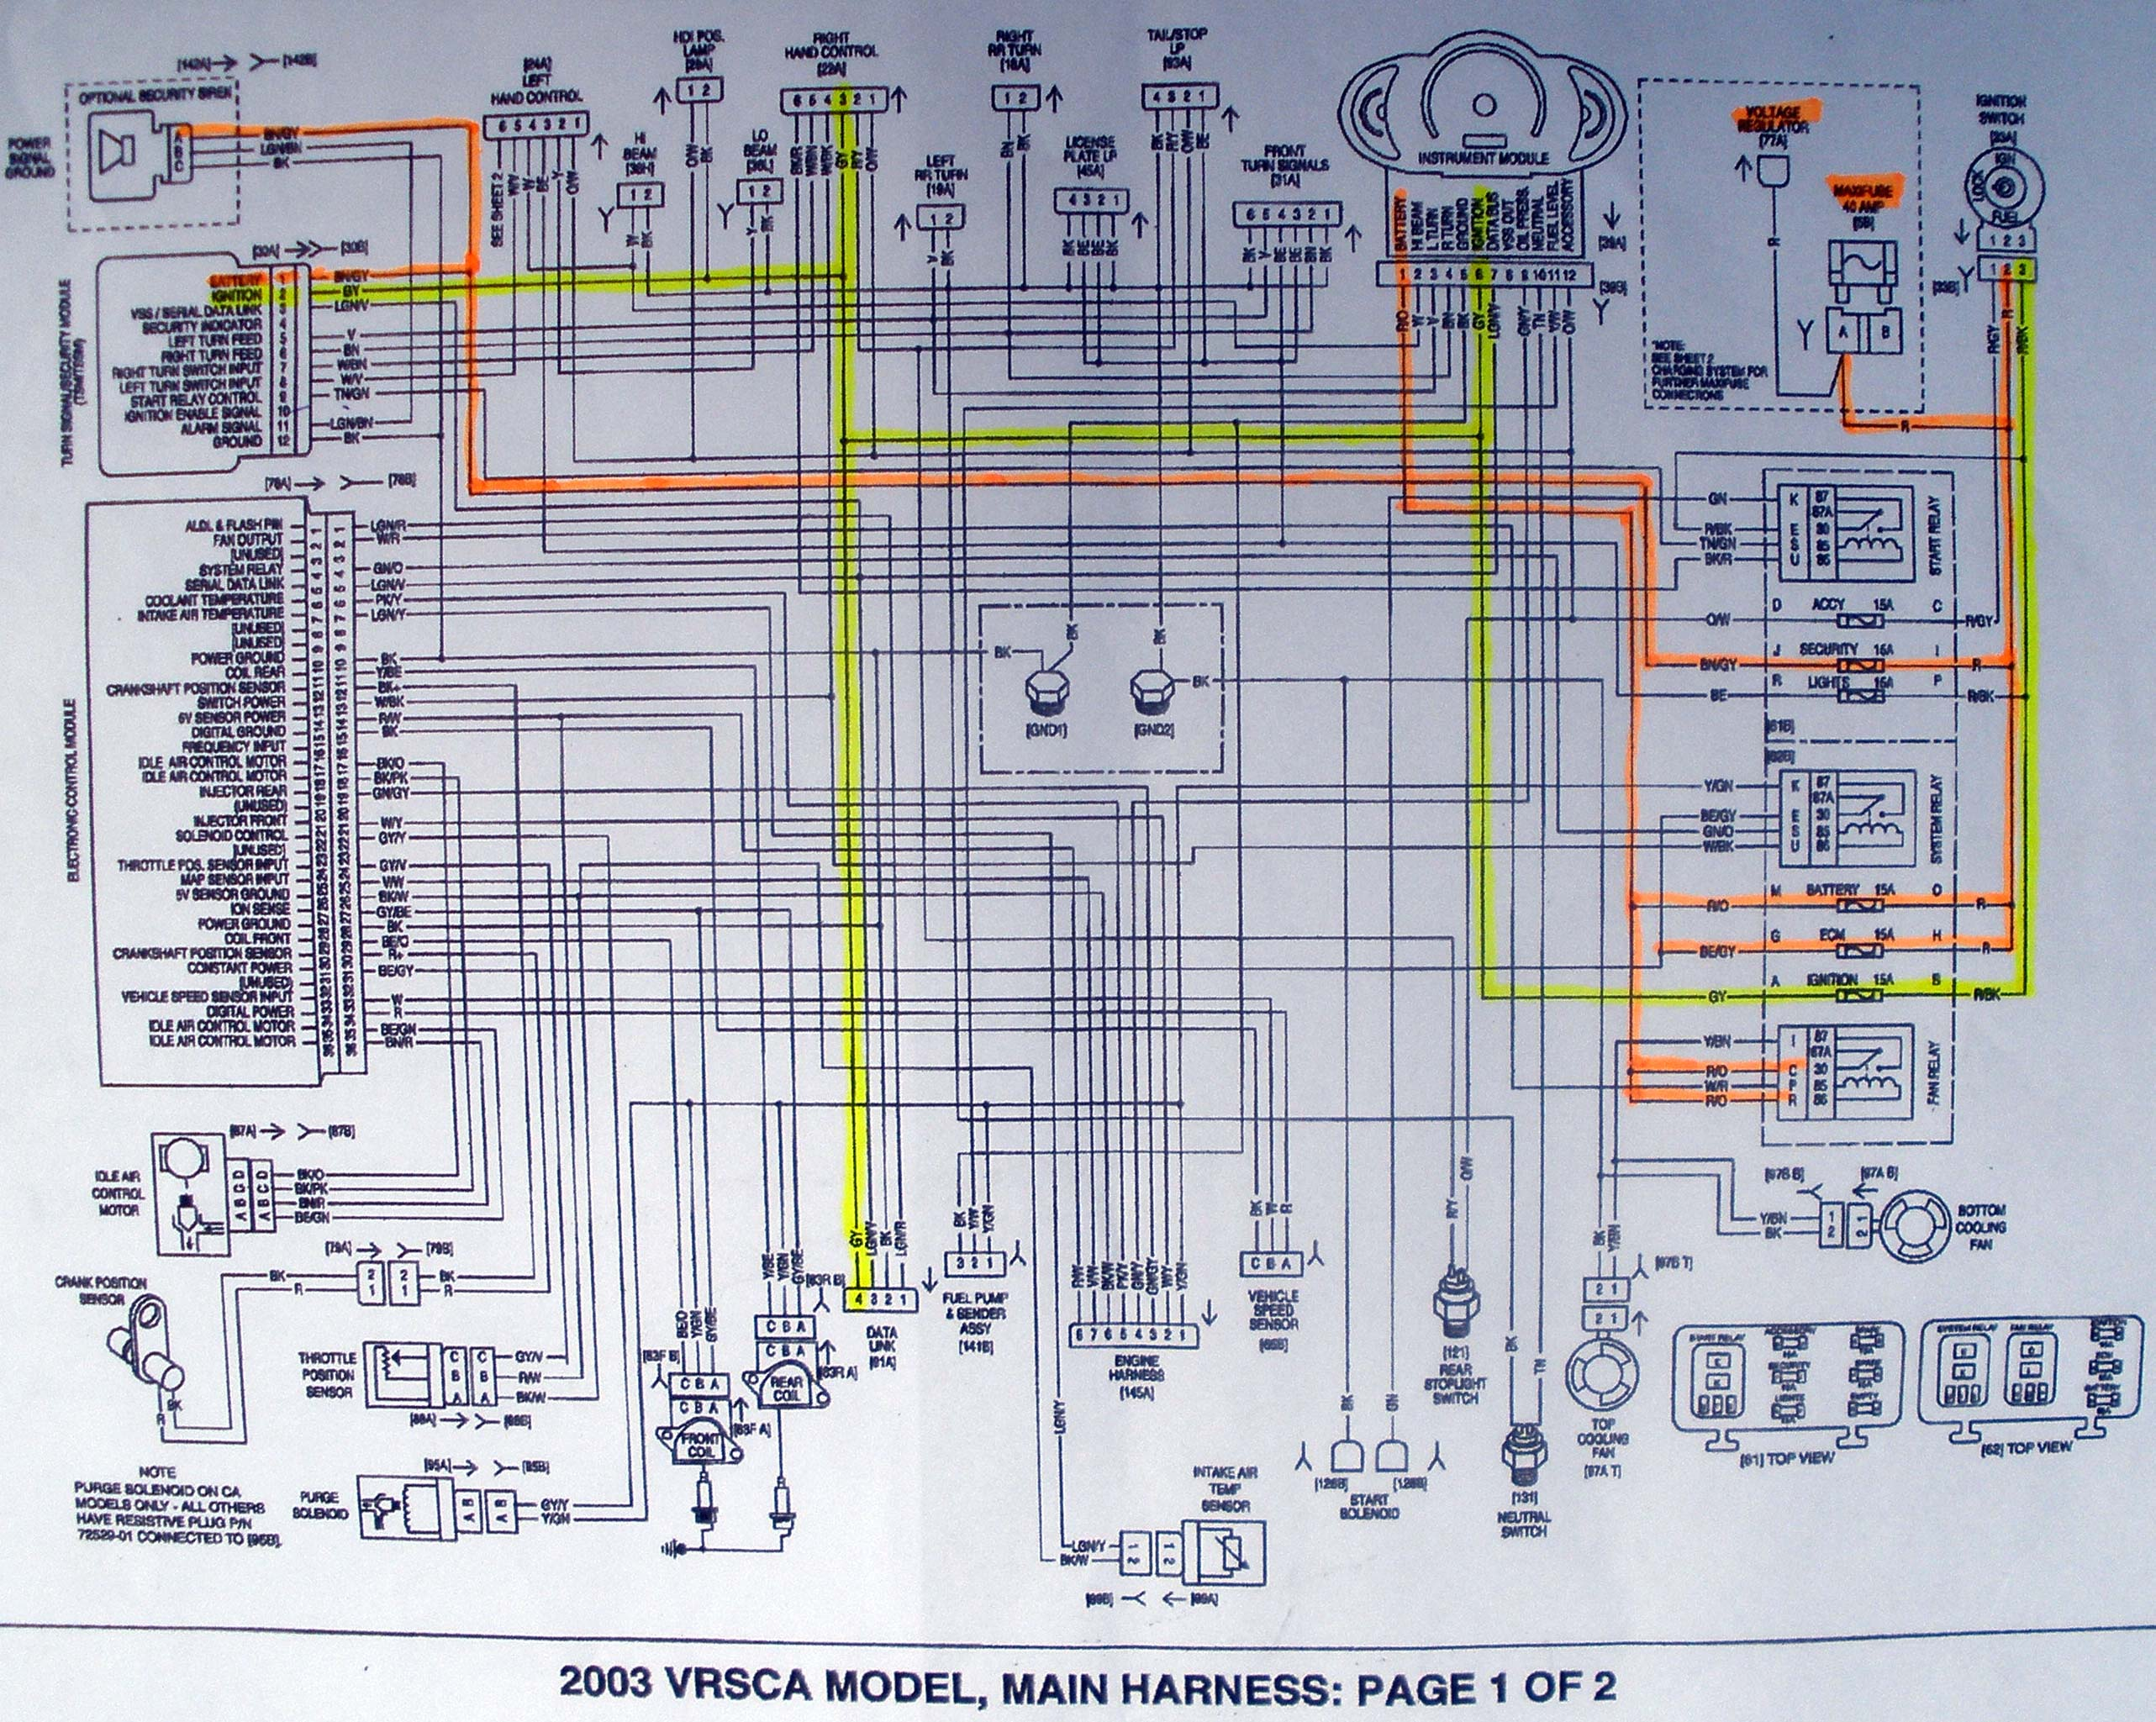 nikkai car stereo wiring diagram nikkai image car wiring loom design images there are seven sub harness on nikkai car stereo wiring diagram